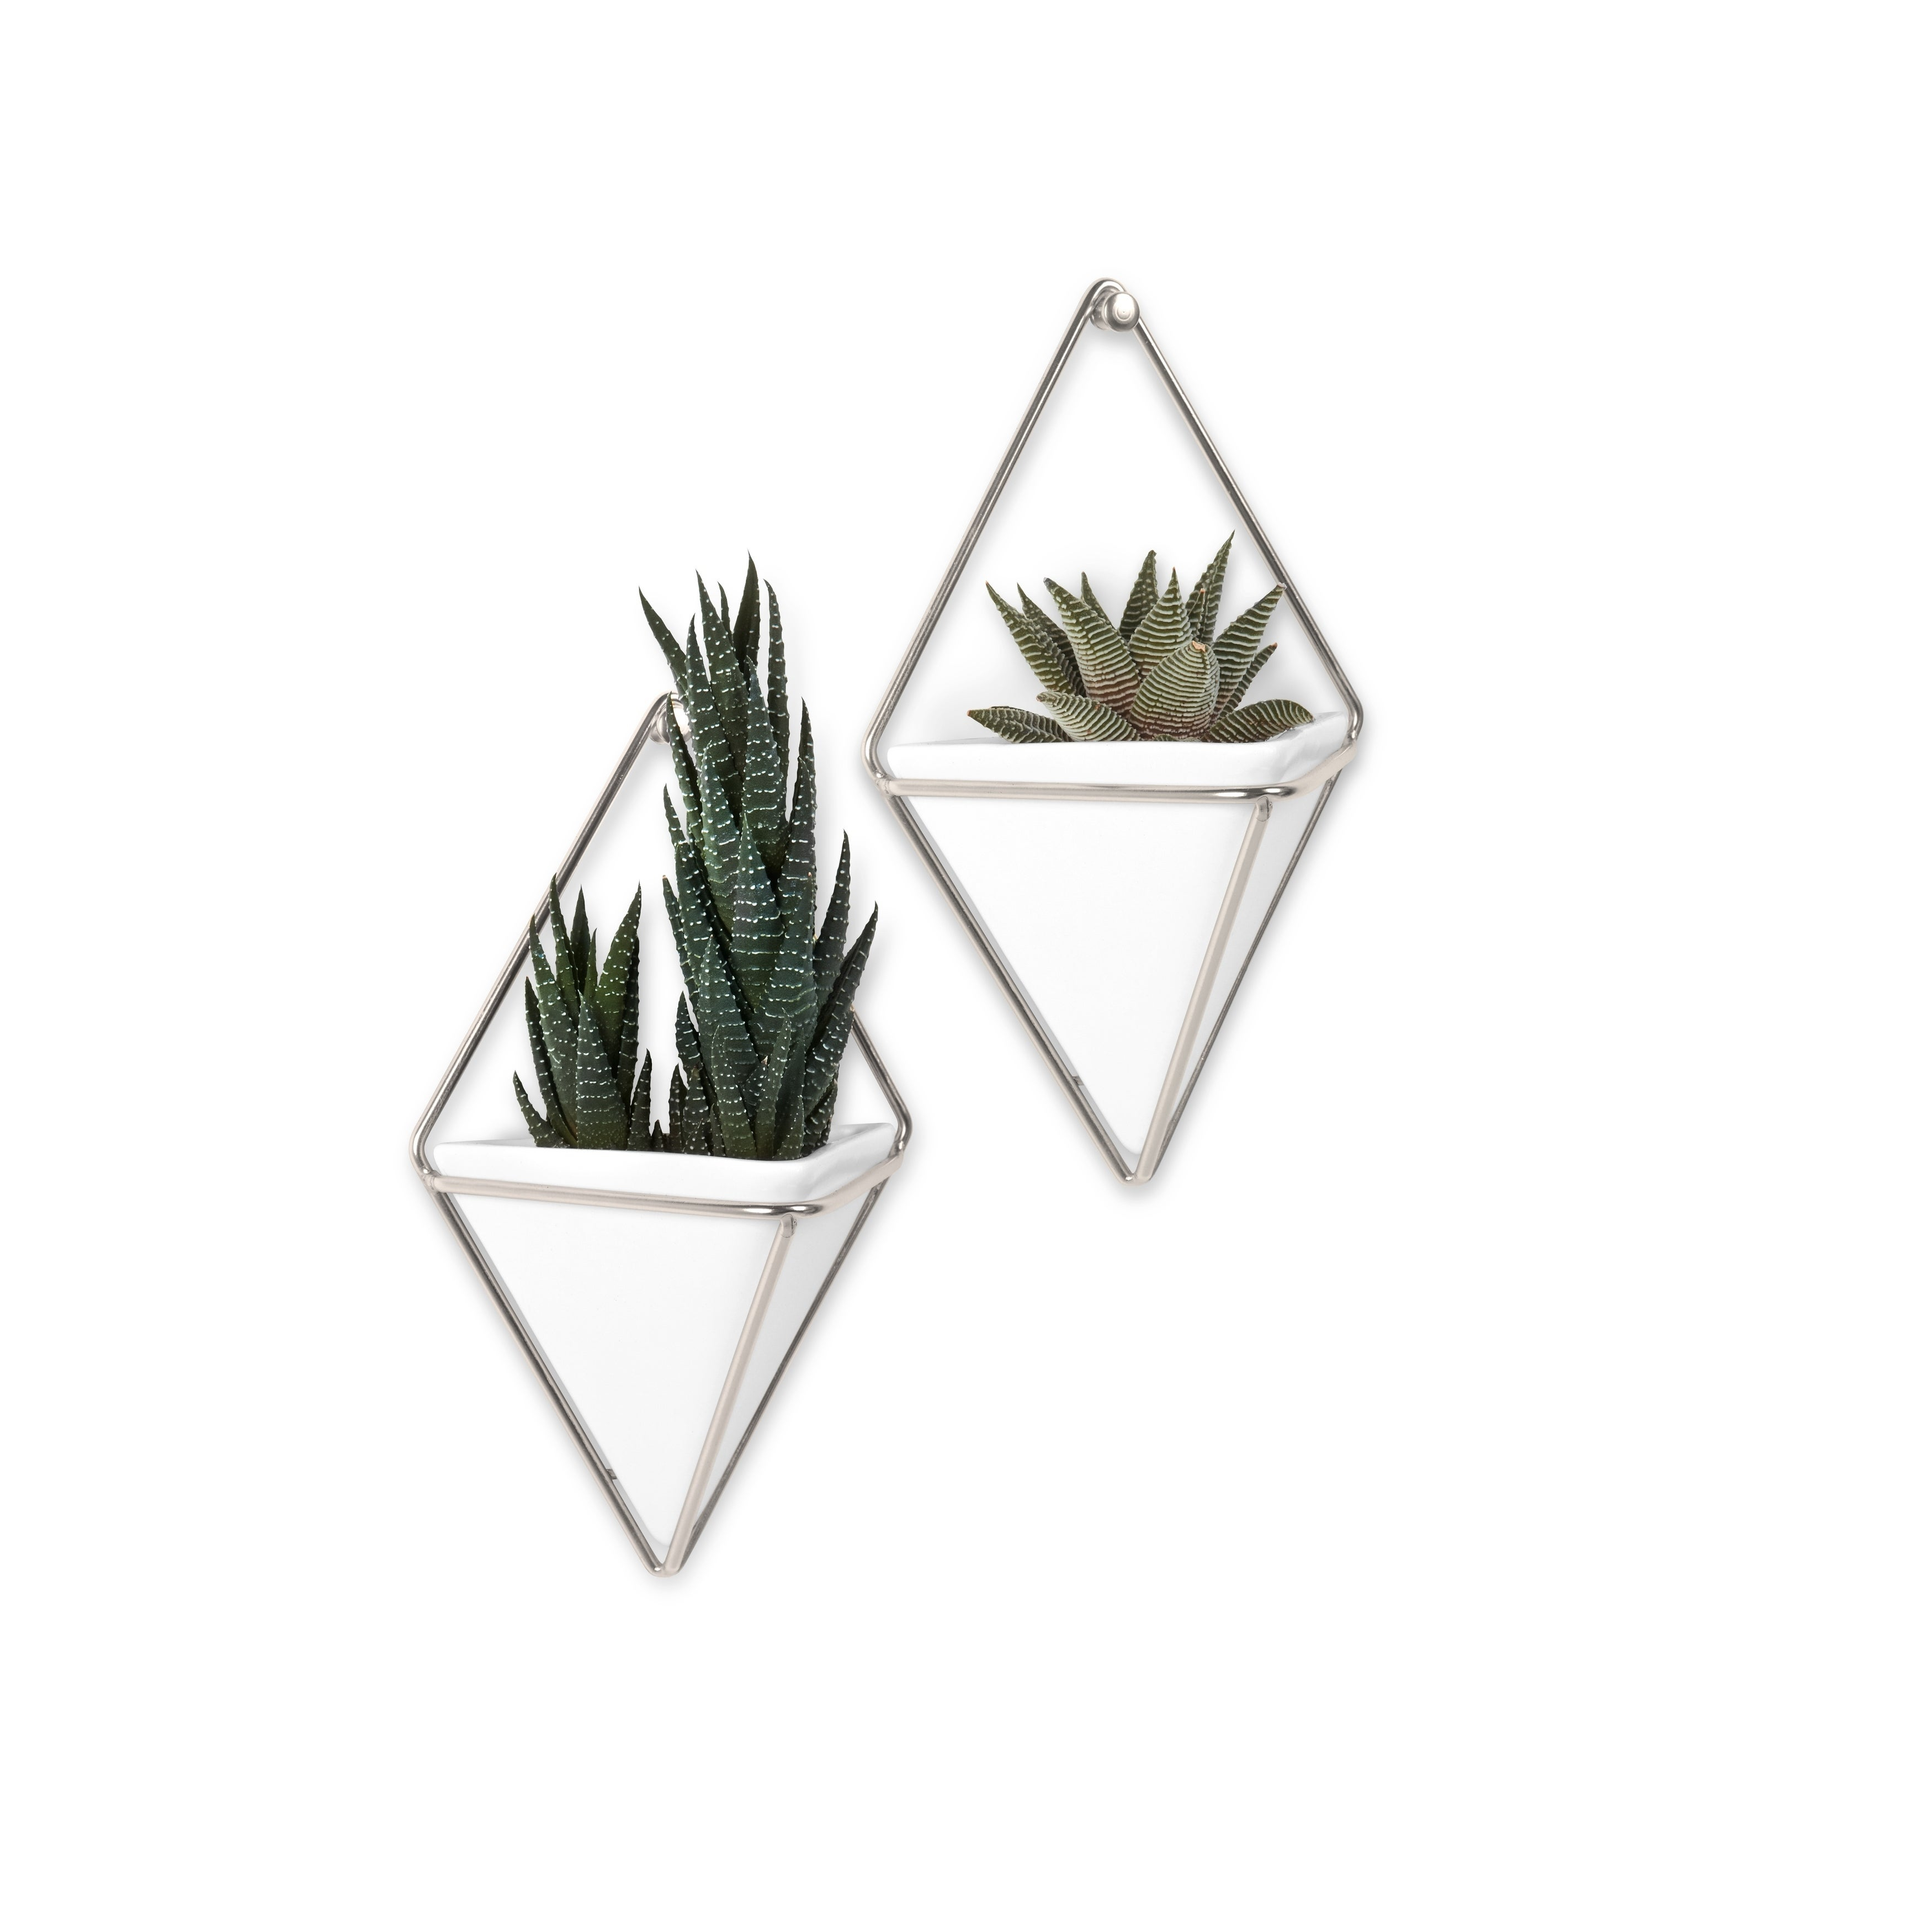 Umbra Trigg Hanging Planter & Wall Decor (Set Of 2) pertaining to 2 Piece Trigg Wall Decor Sets (Set of 2) (Image 23 of 30)